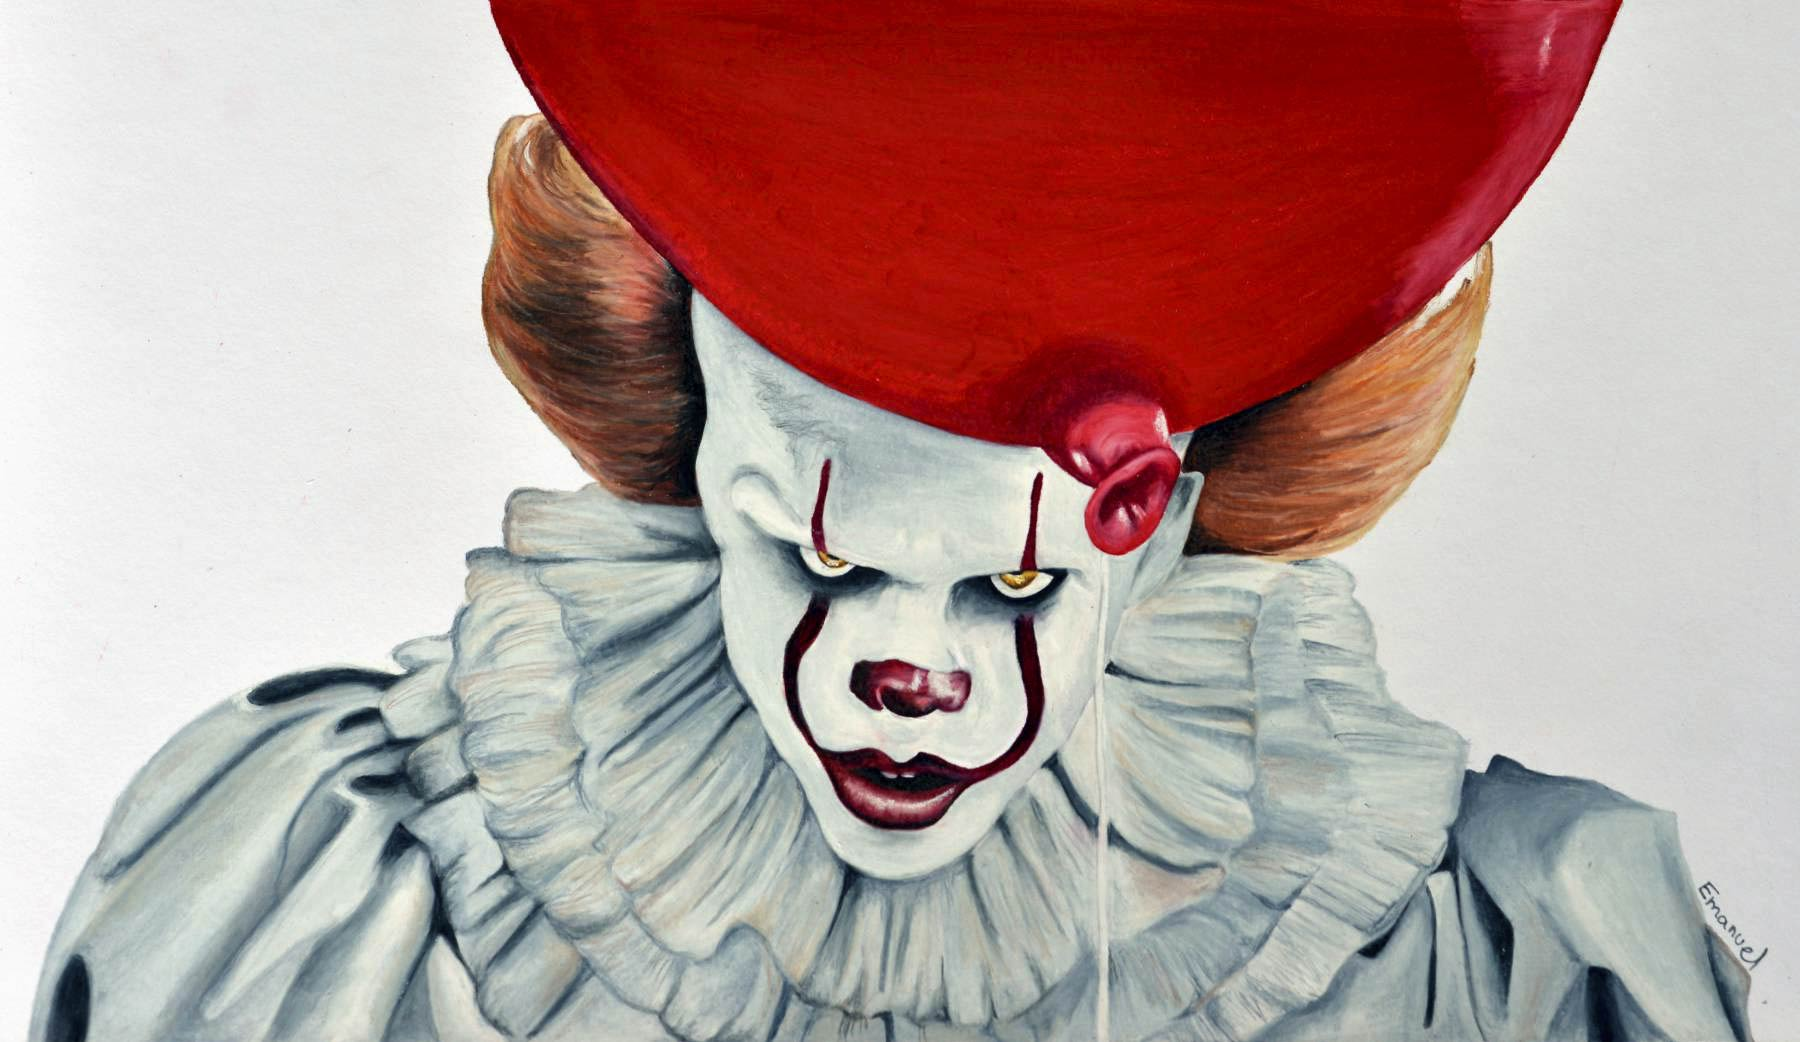 23+ Drawn Pictures Of Pennywise The Clown Background